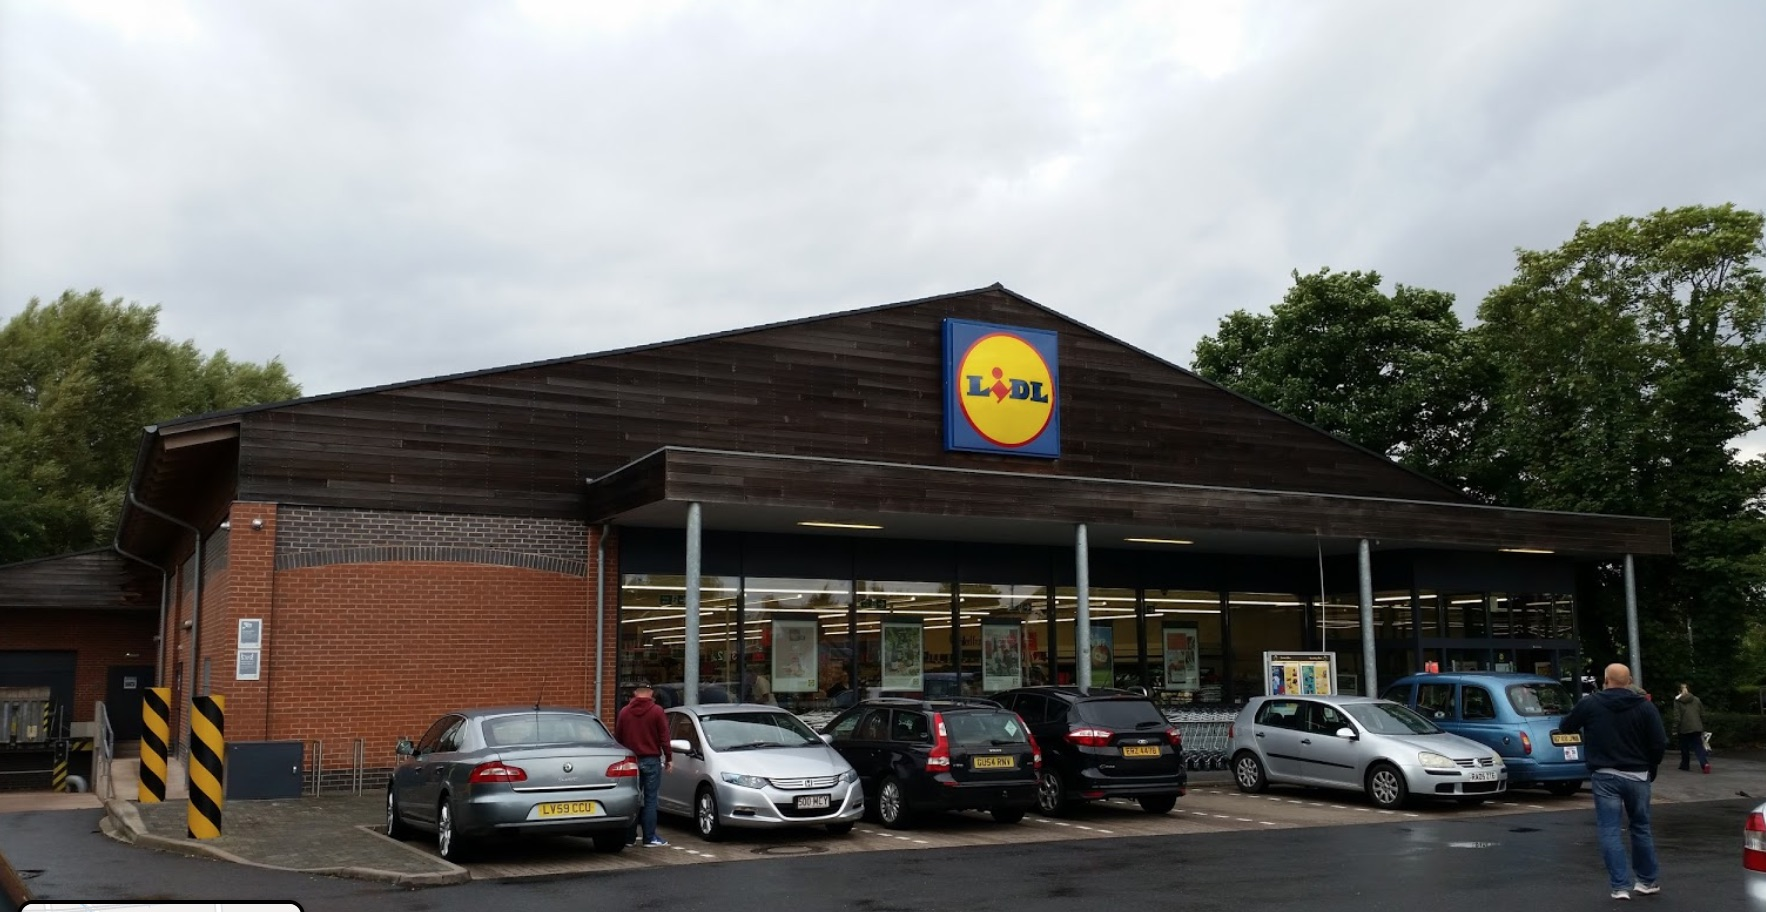 Discount supermarket Lidl to 'launch online delivery service'